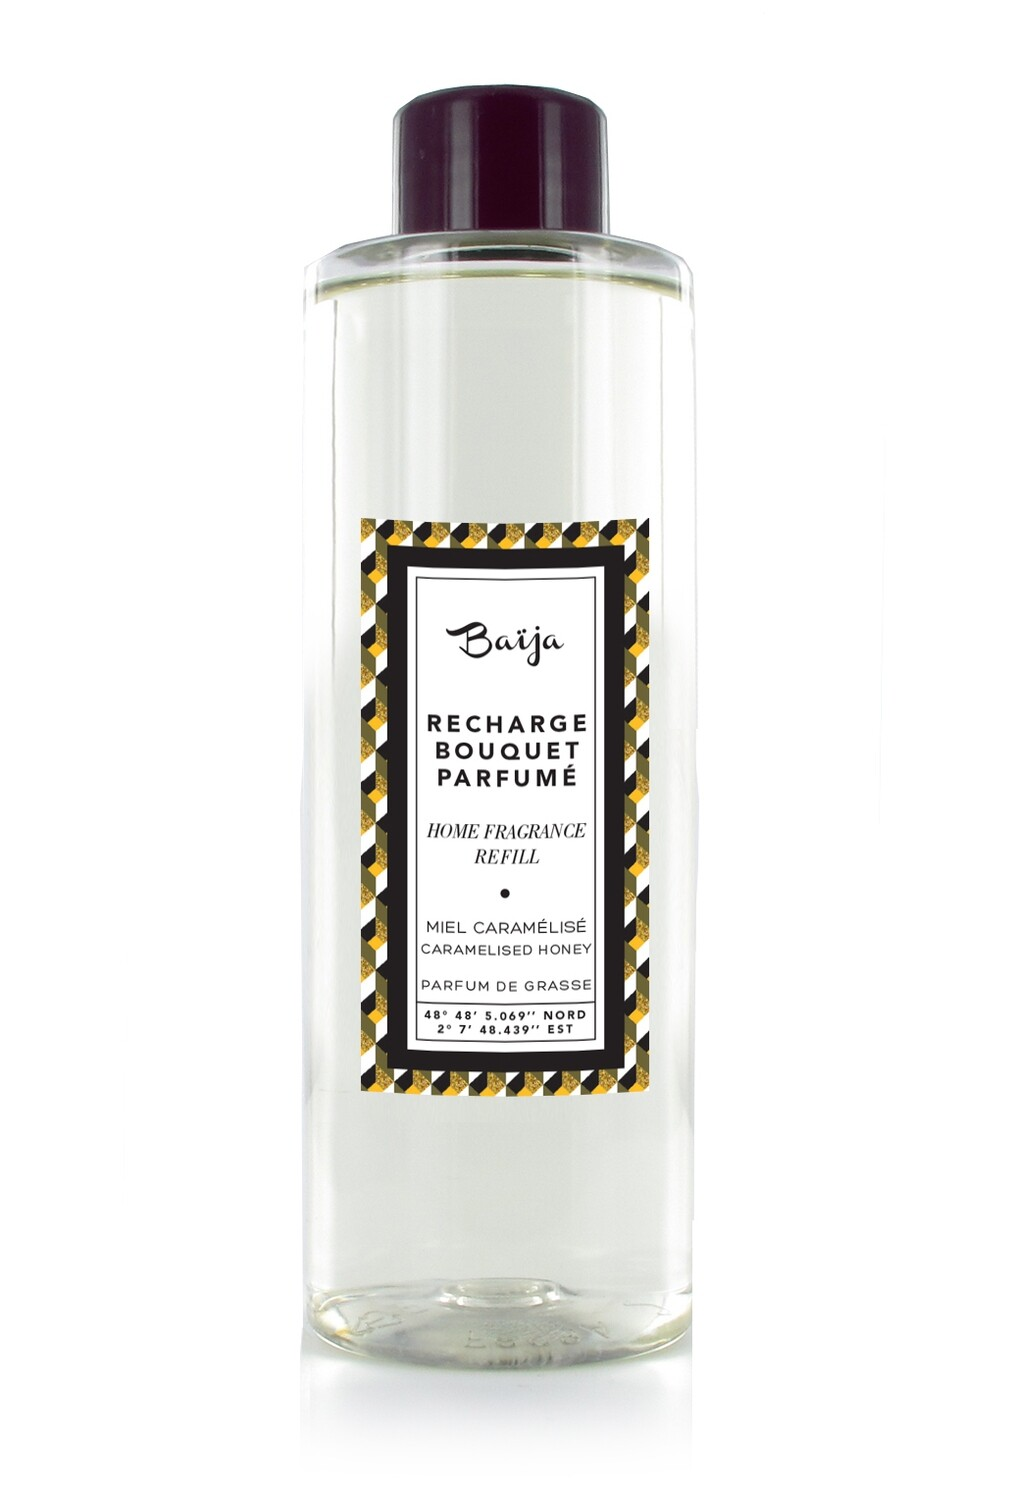 Recharge Bouquet parfumé - Festin royal 200ML